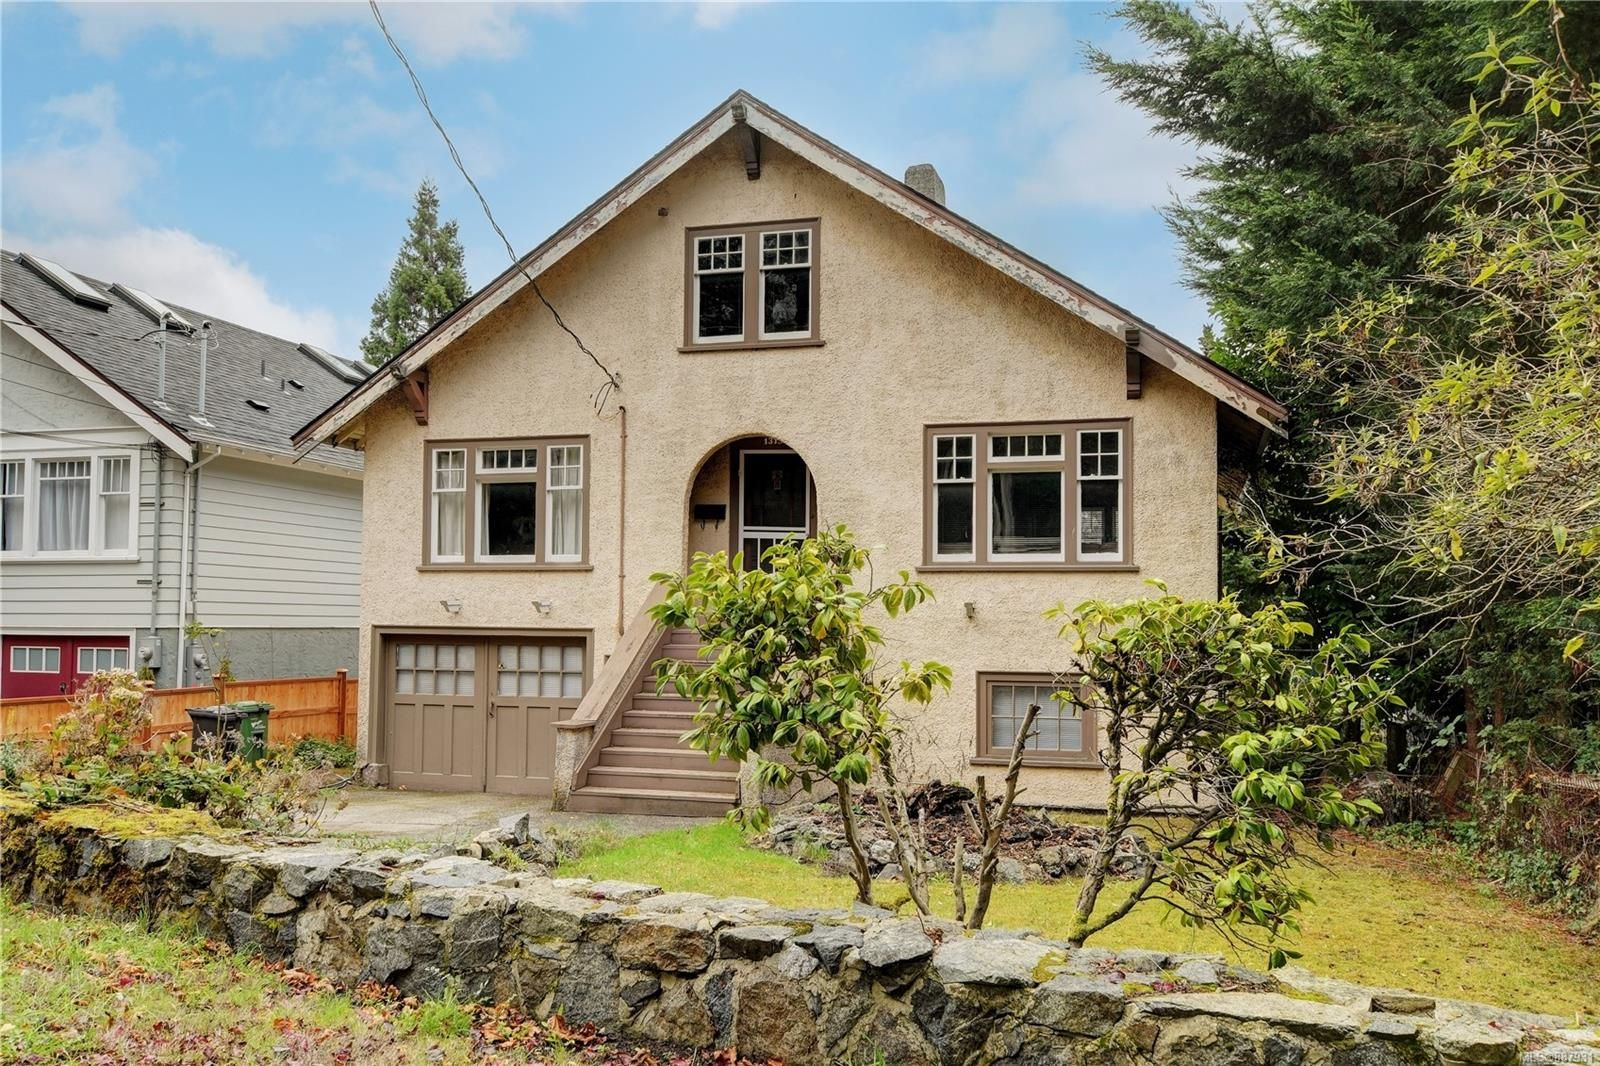 Main Photo: 1315 Coventry Ave in Victoria: VW Victoria West House for sale (Victoria West)  : MLS®# 887931